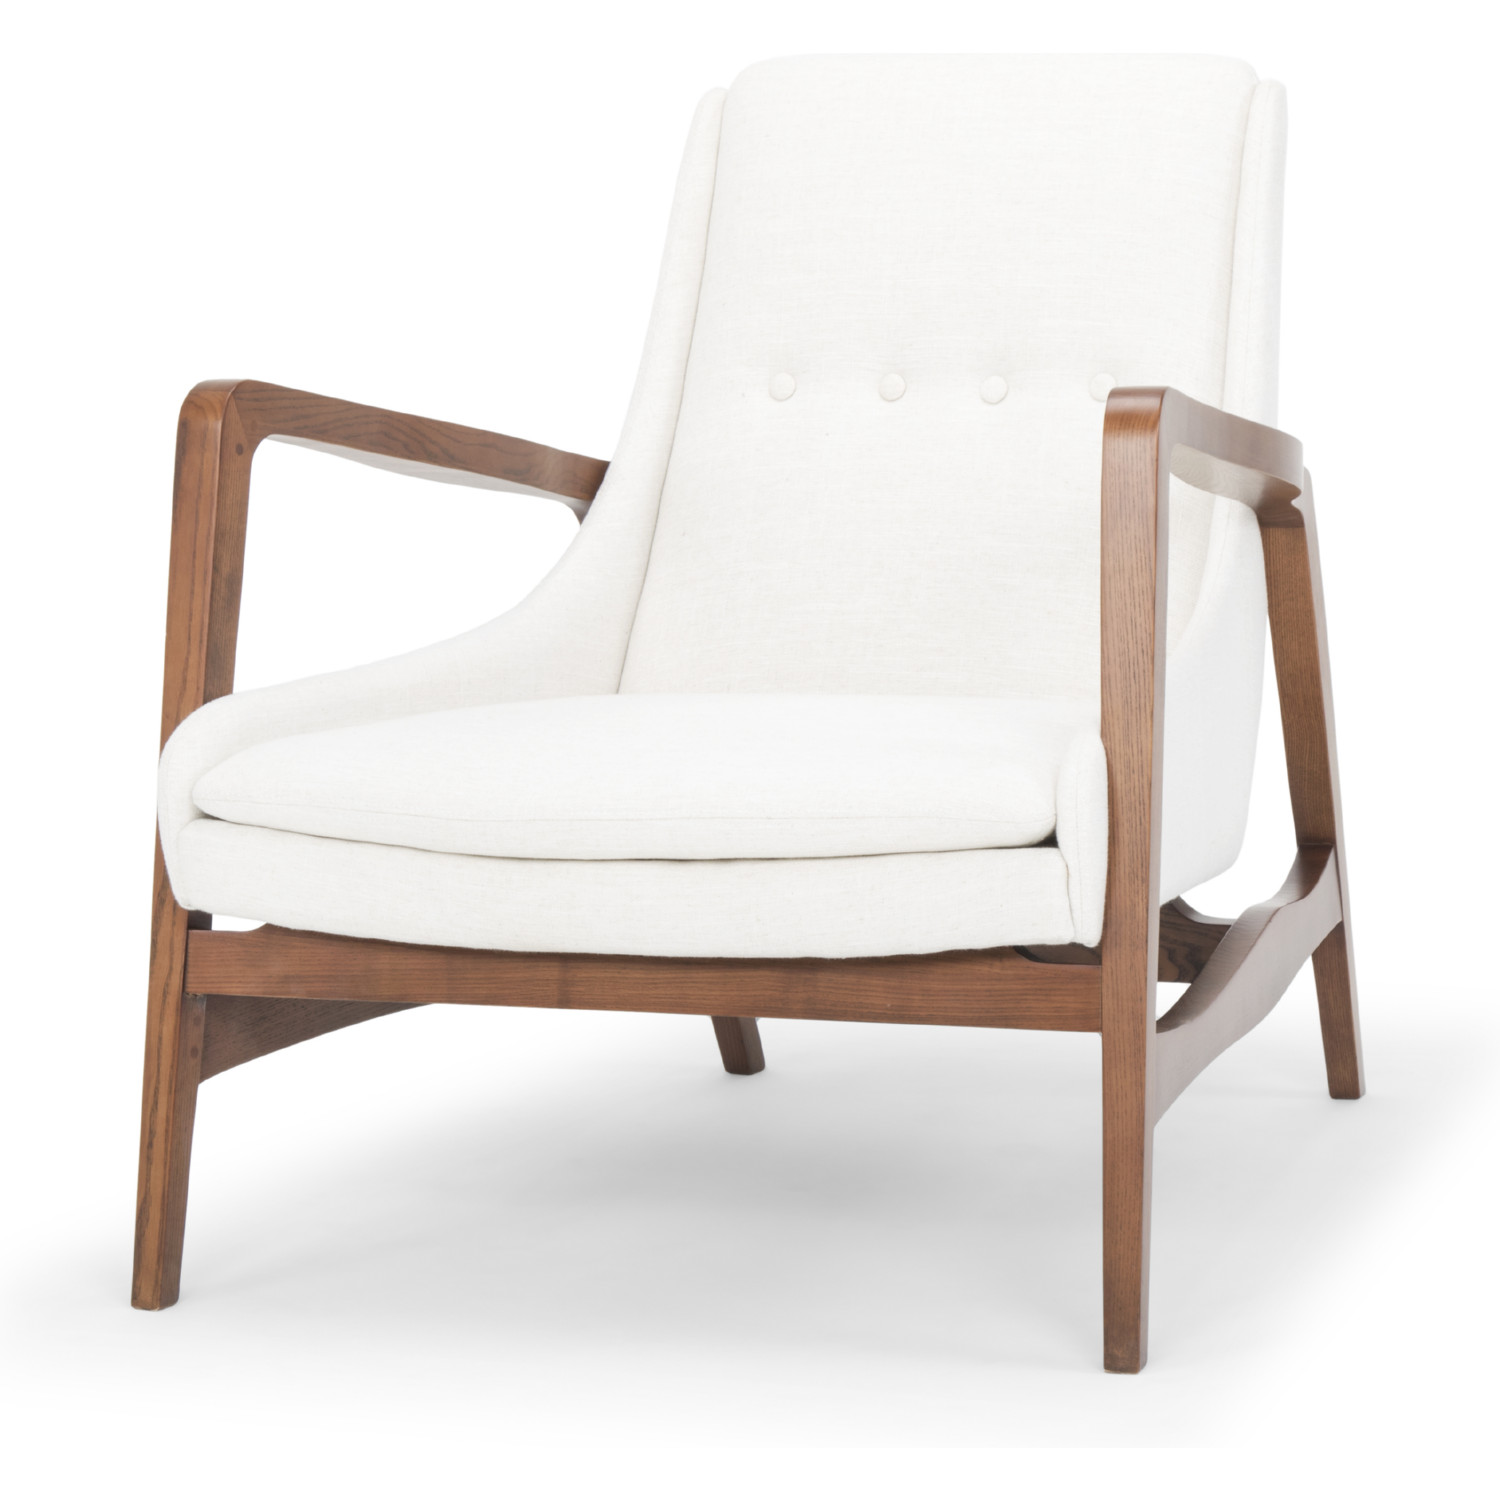 Terrific Enzo Accent Chair In Flax Fabric On Walnut Finish Ash Frame By Nuevo Modern Furniture Squirreltailoven Fun Painted Chair Ideas Images Squirreltailovenorg